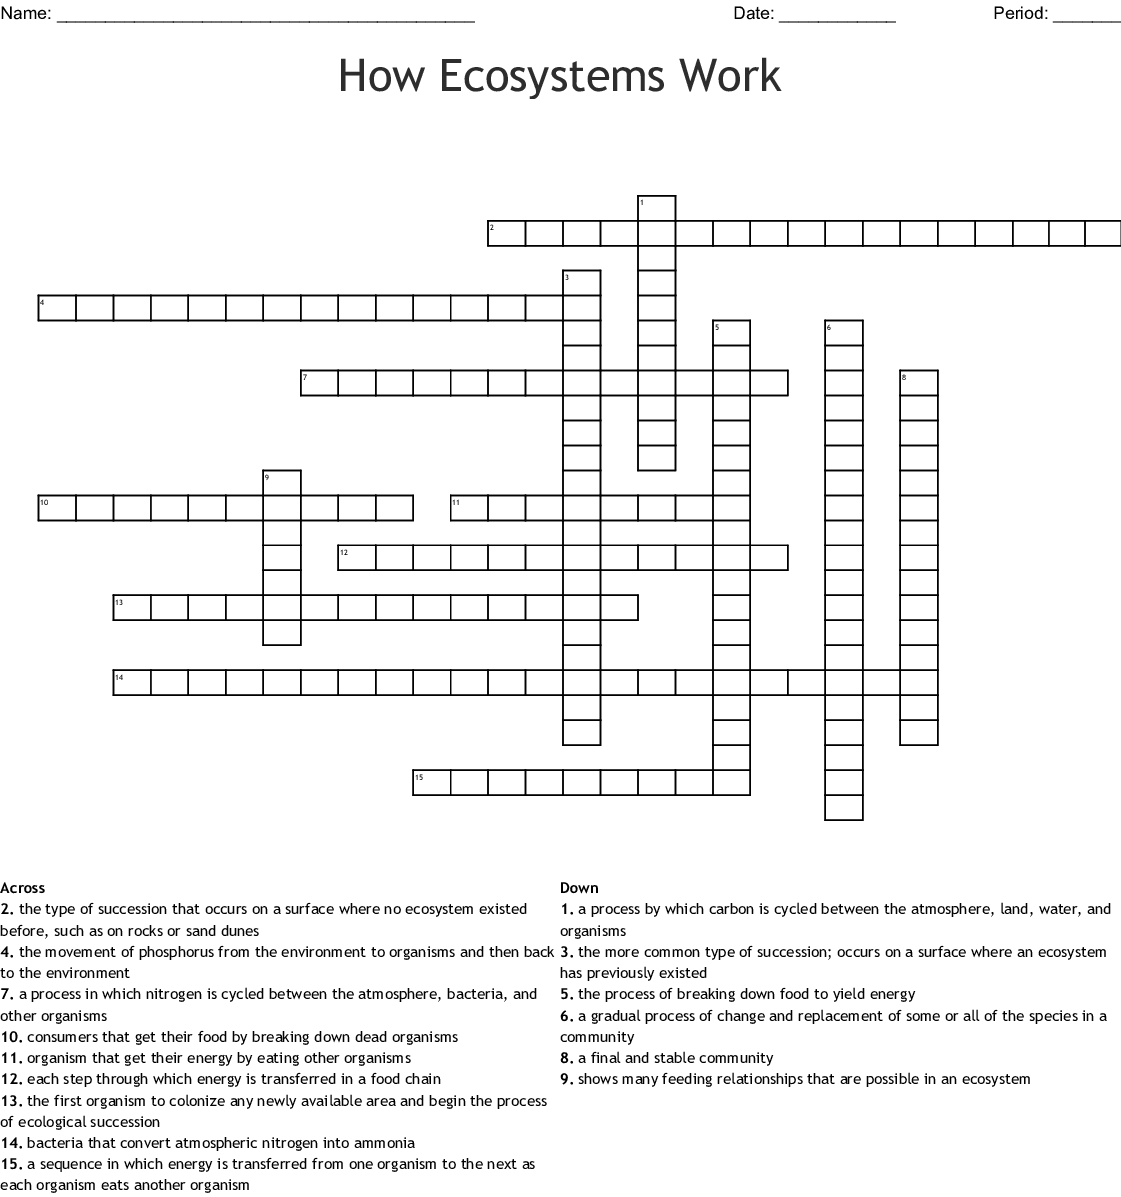 How Ecosystems Work Crossword